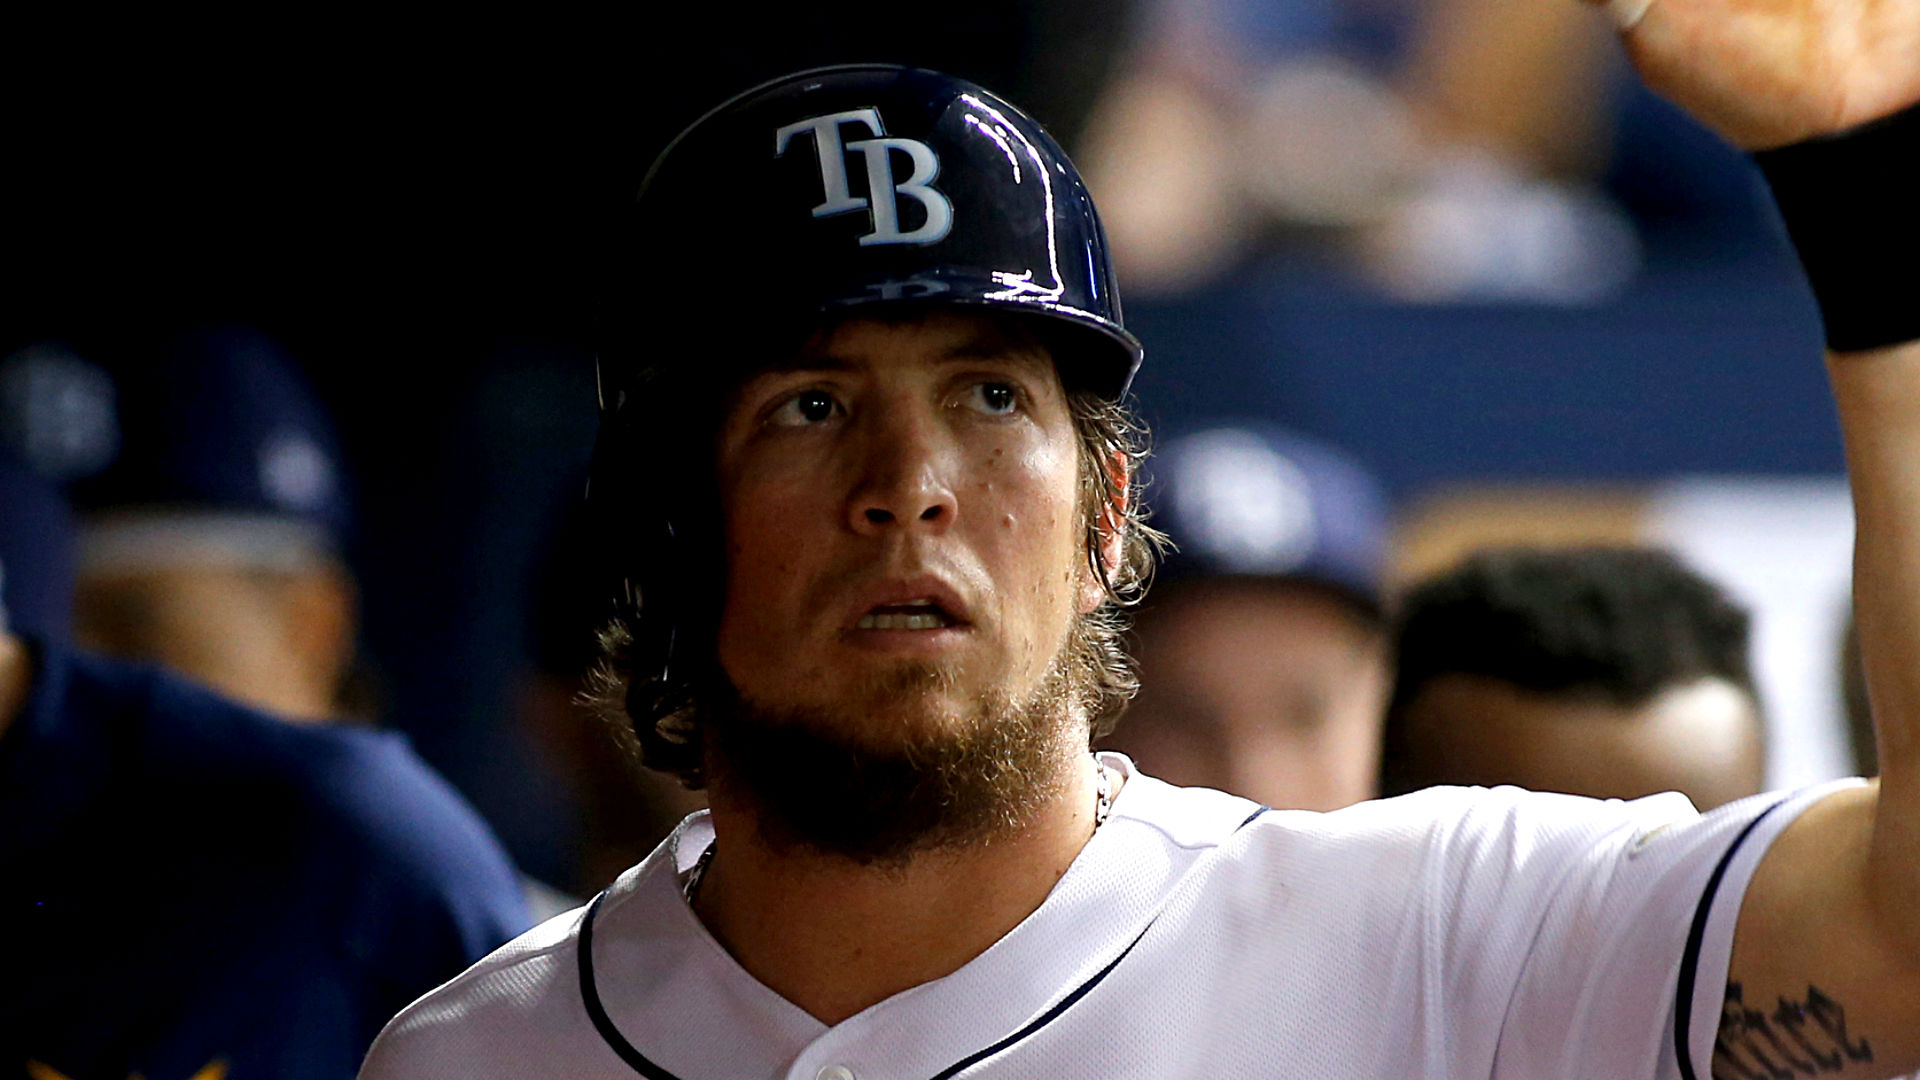 Colby Rasmus 'To Step Away From Baseball' For Undisclosed Reasons